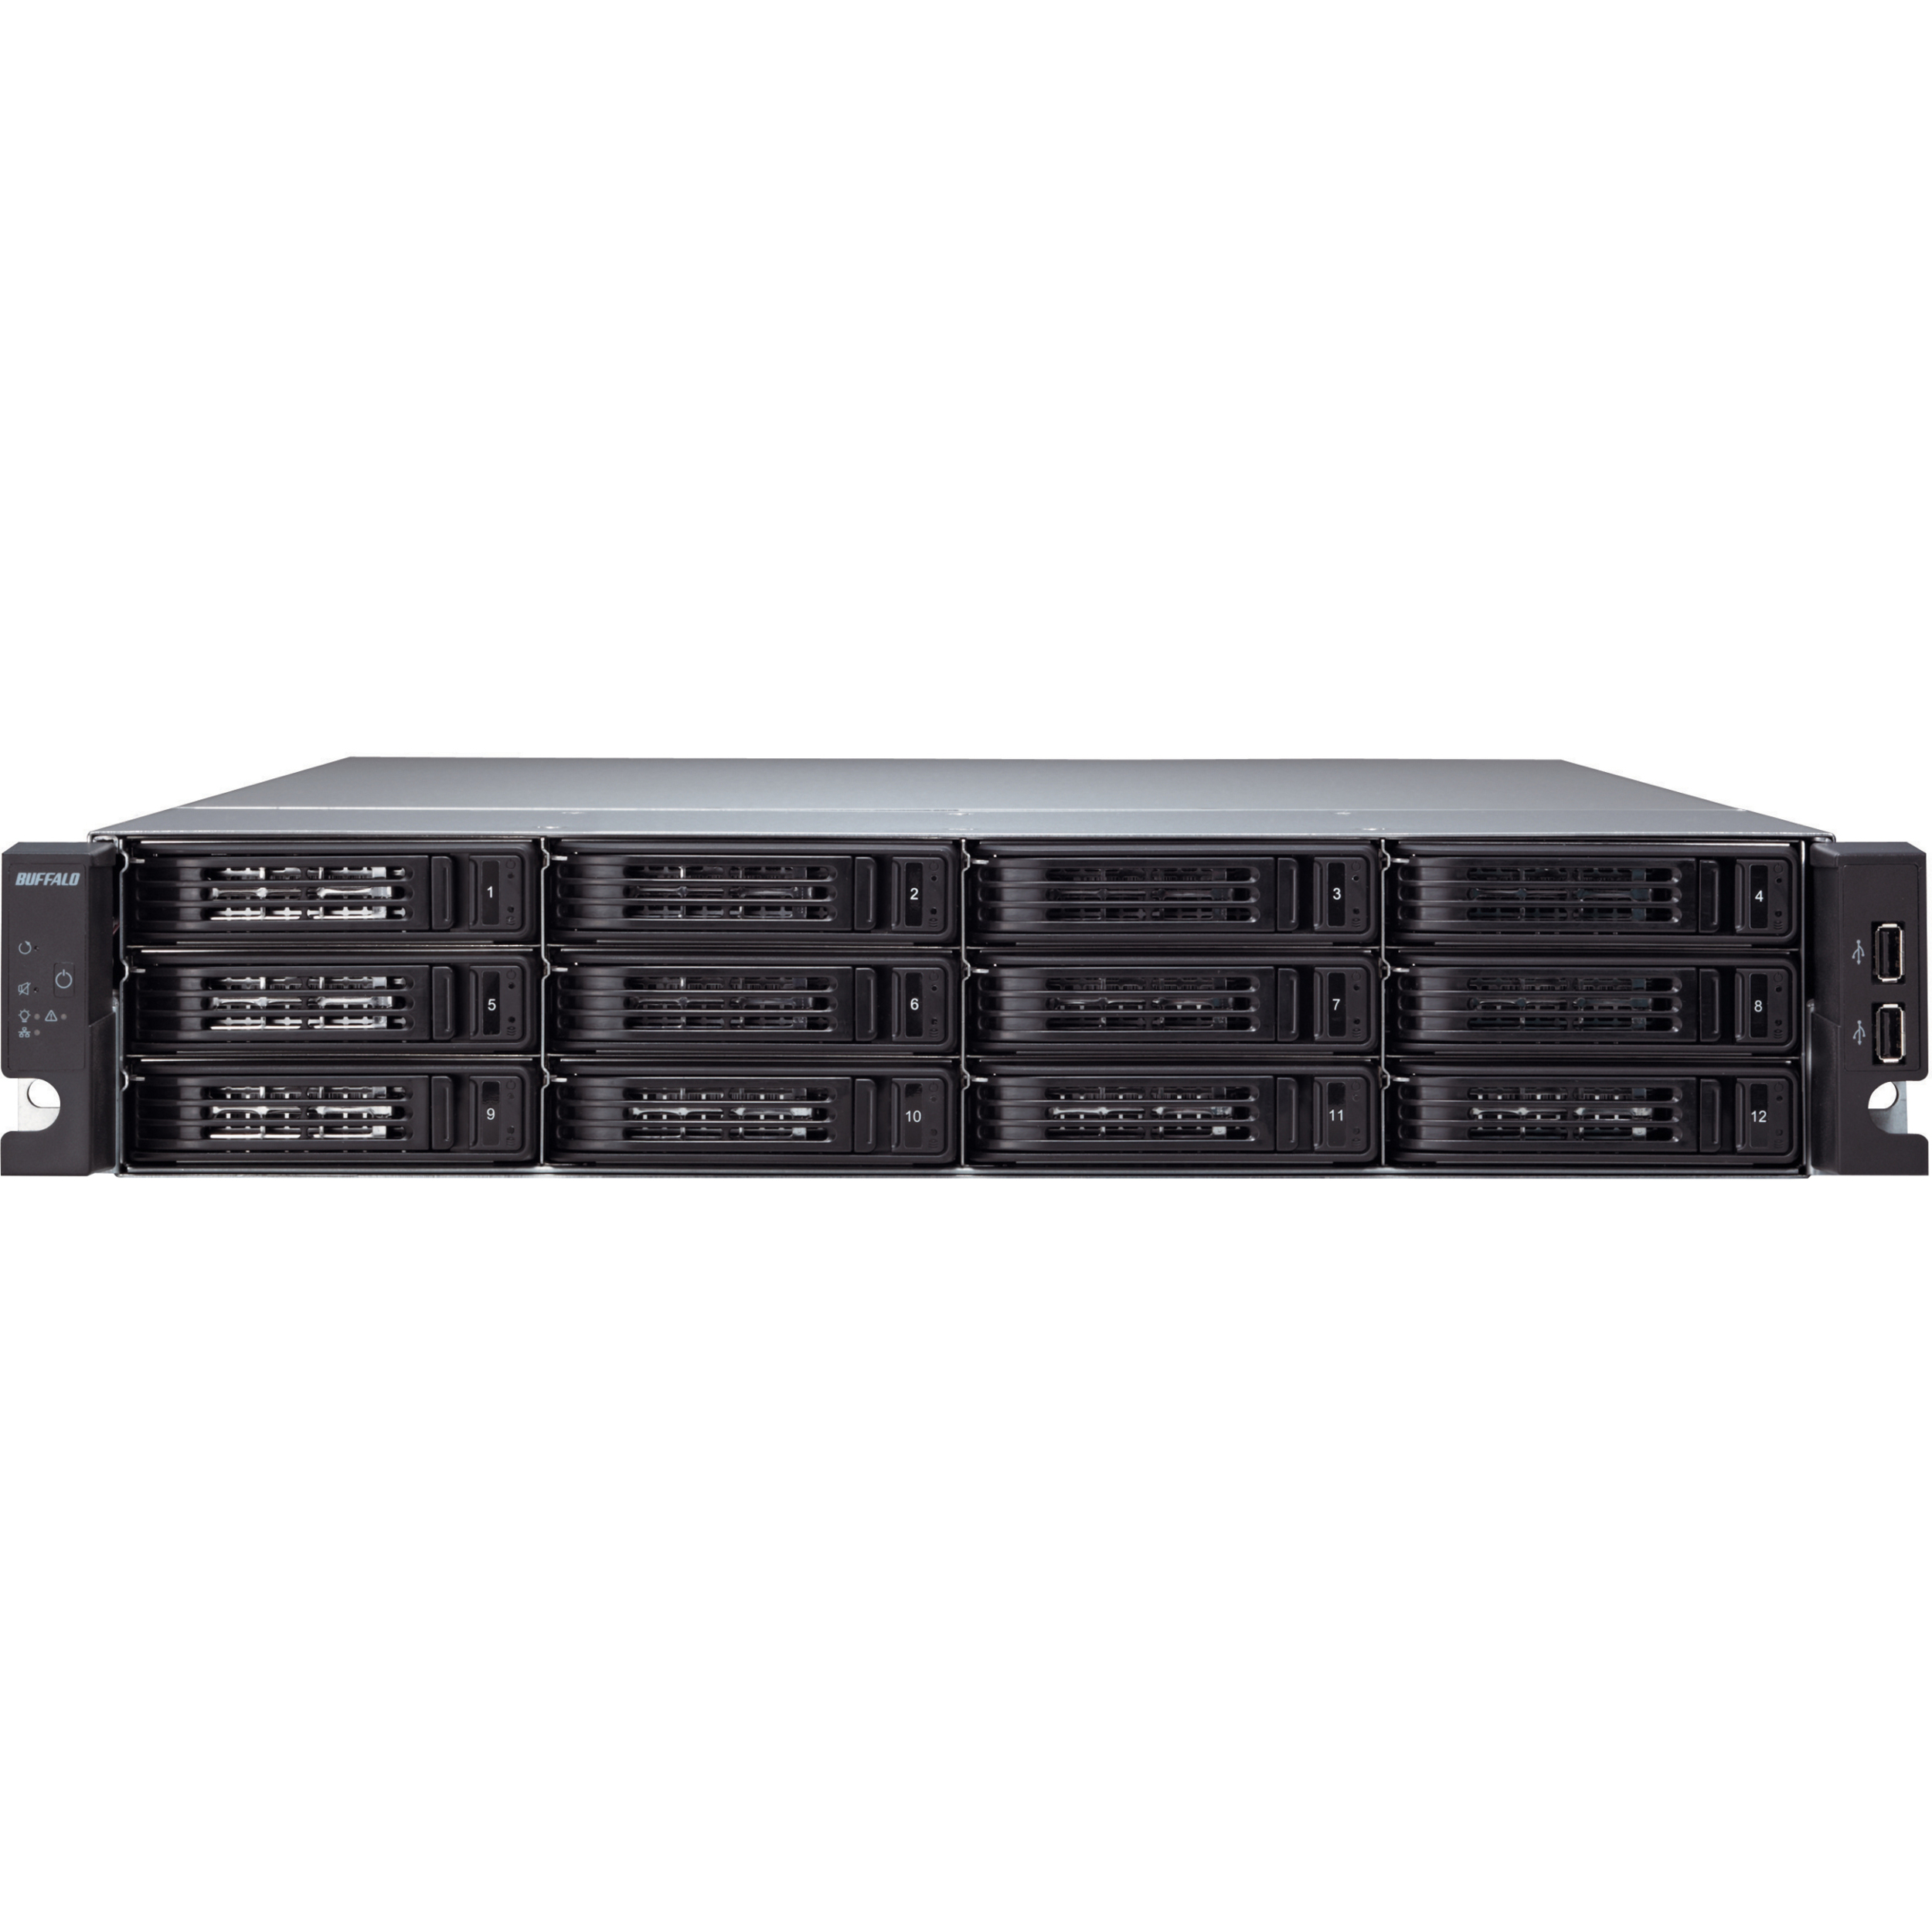 Buffalo TeraStation TS-2RZS08T04D 12 x Total Bays Network Storage Server - 2U - Rack-mountable